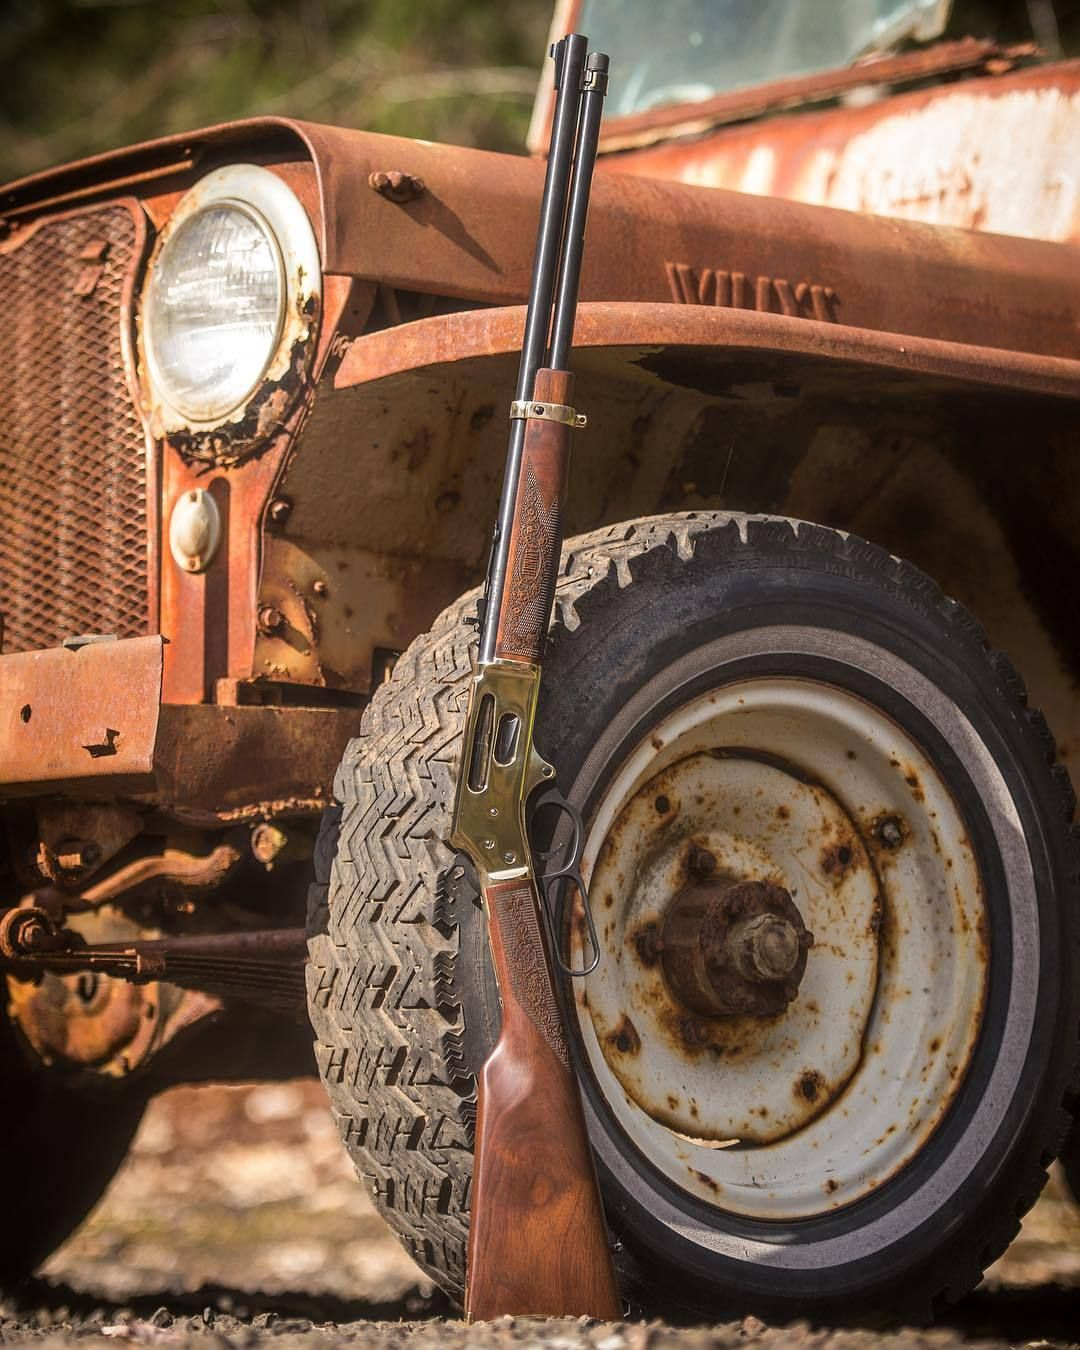 River Pines Jeeps Best Background Images Black Background Photography Light Background Images 1000 amazing car background photos pexels free stock photos. river pines jeeps best background